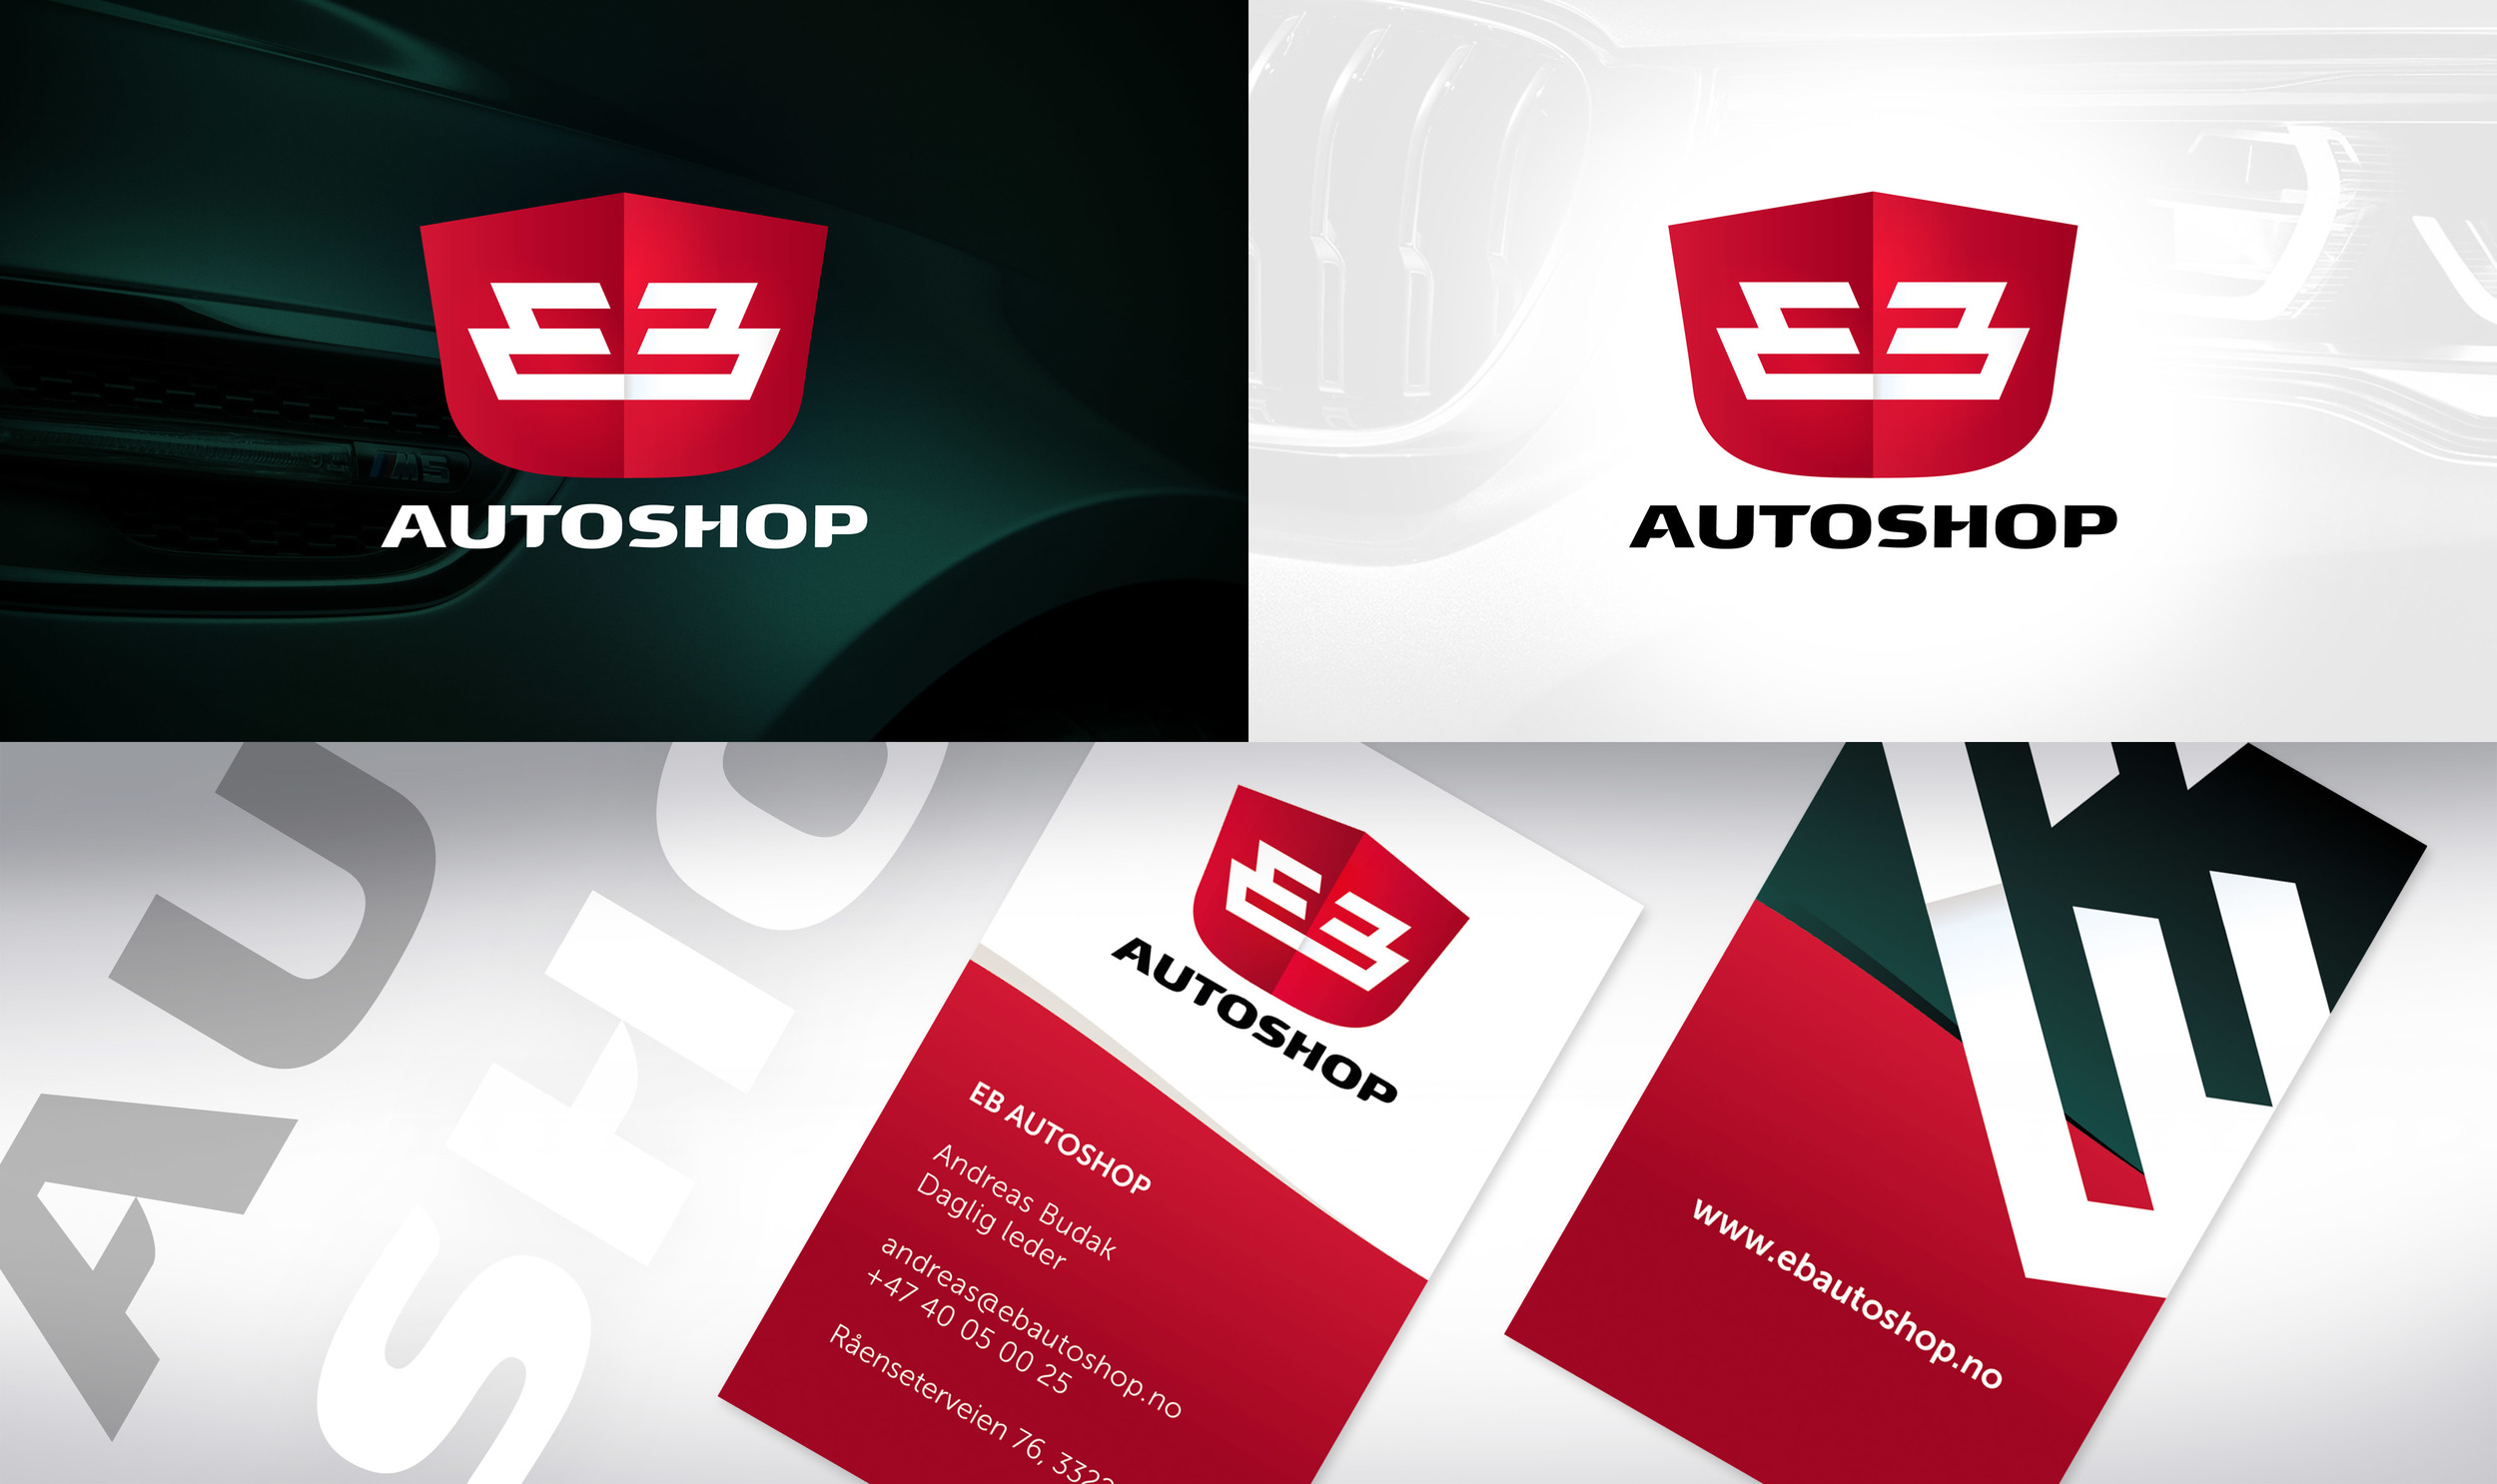 Logodesign EB Autoshop